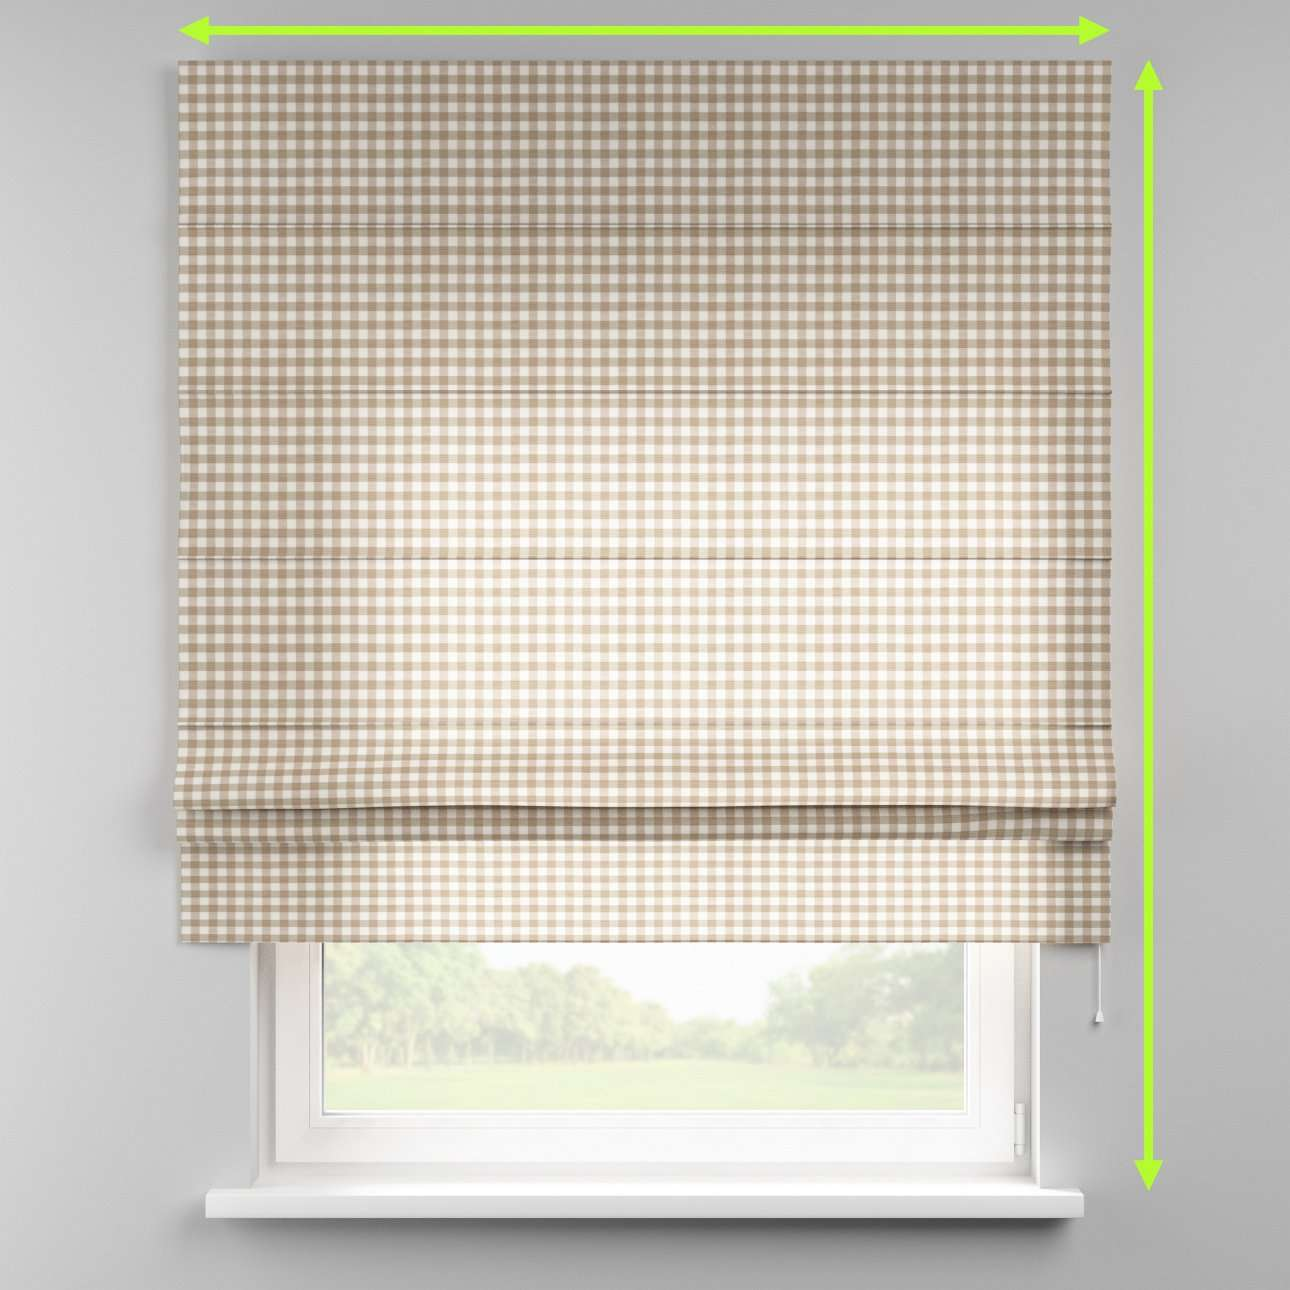 Padva roman blind in collection Quadro, fabric: 136-06